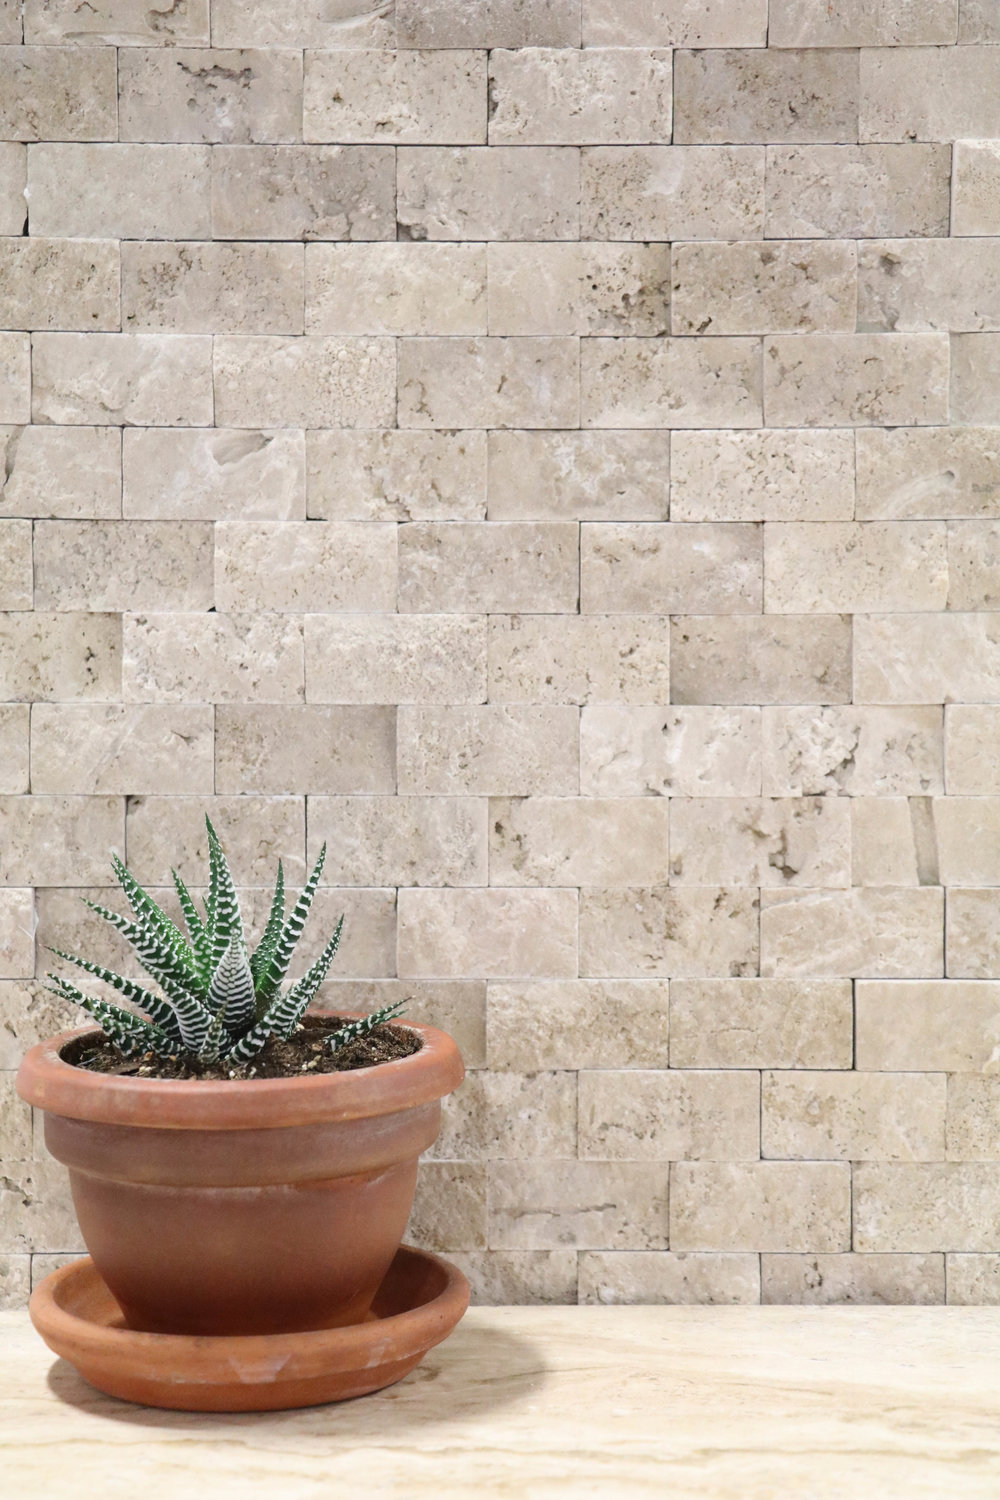 Durango Chiseled Brick